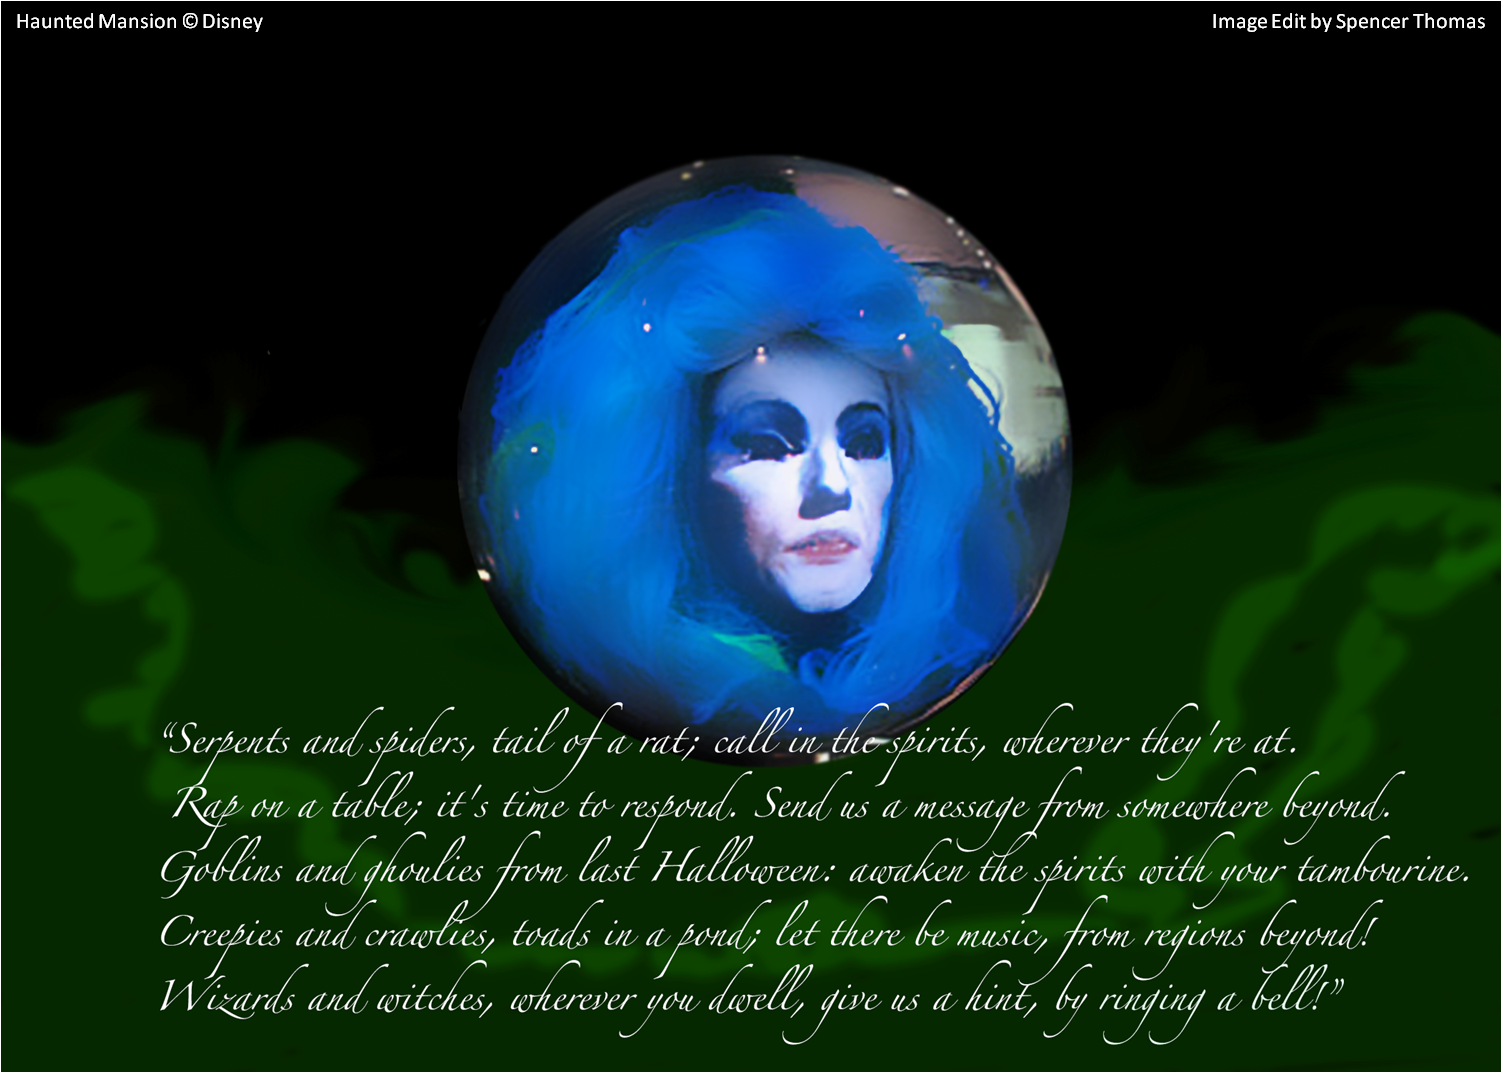 Quotes About Haunted Houses: Madame Leota Quote, Haunted Mansion Copyright Disney